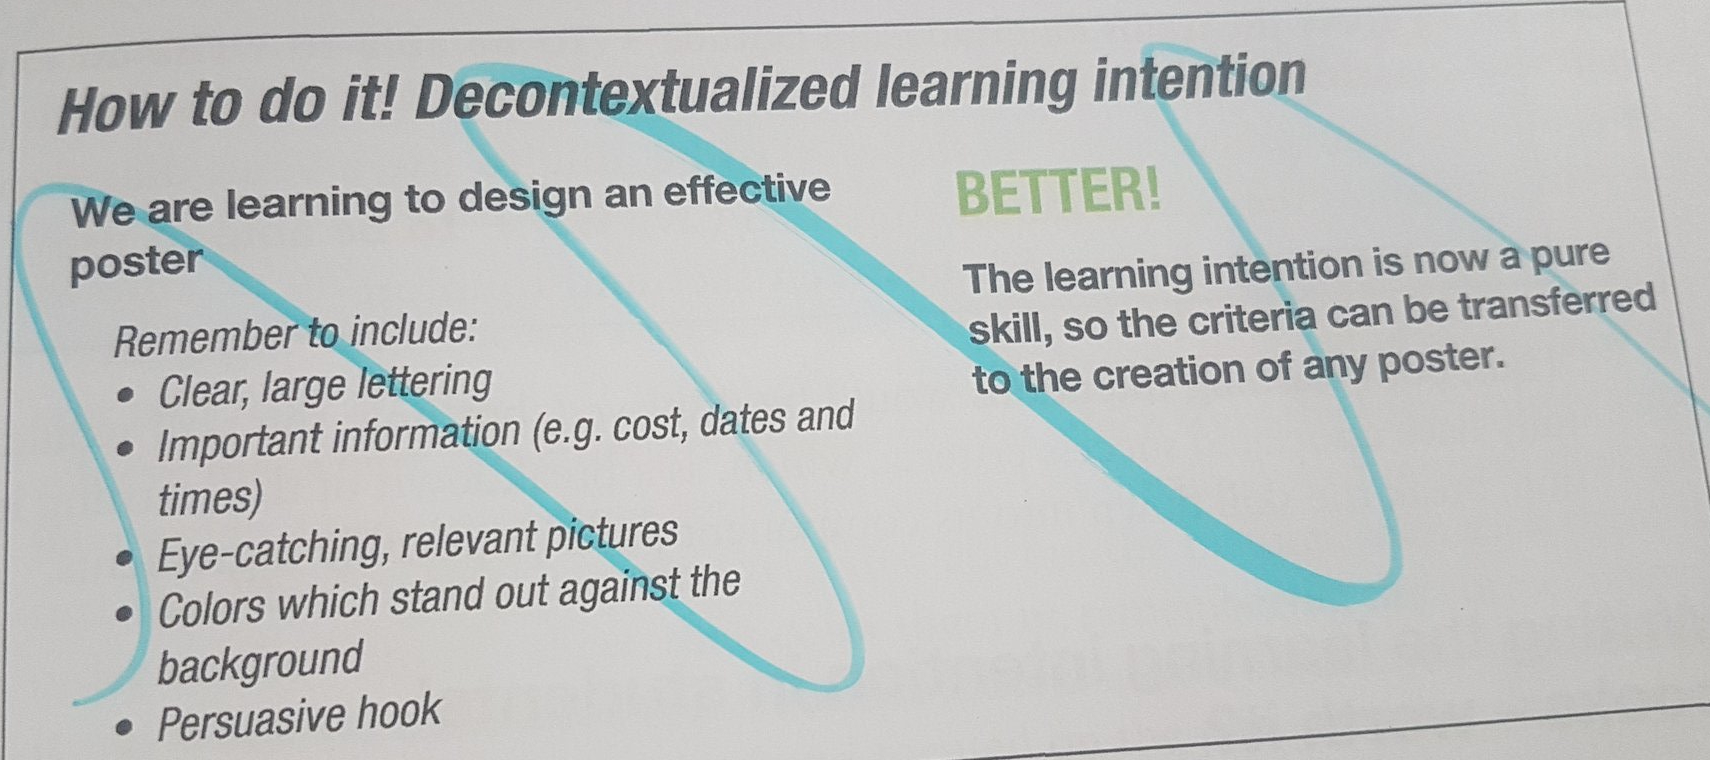 decontextualised learning